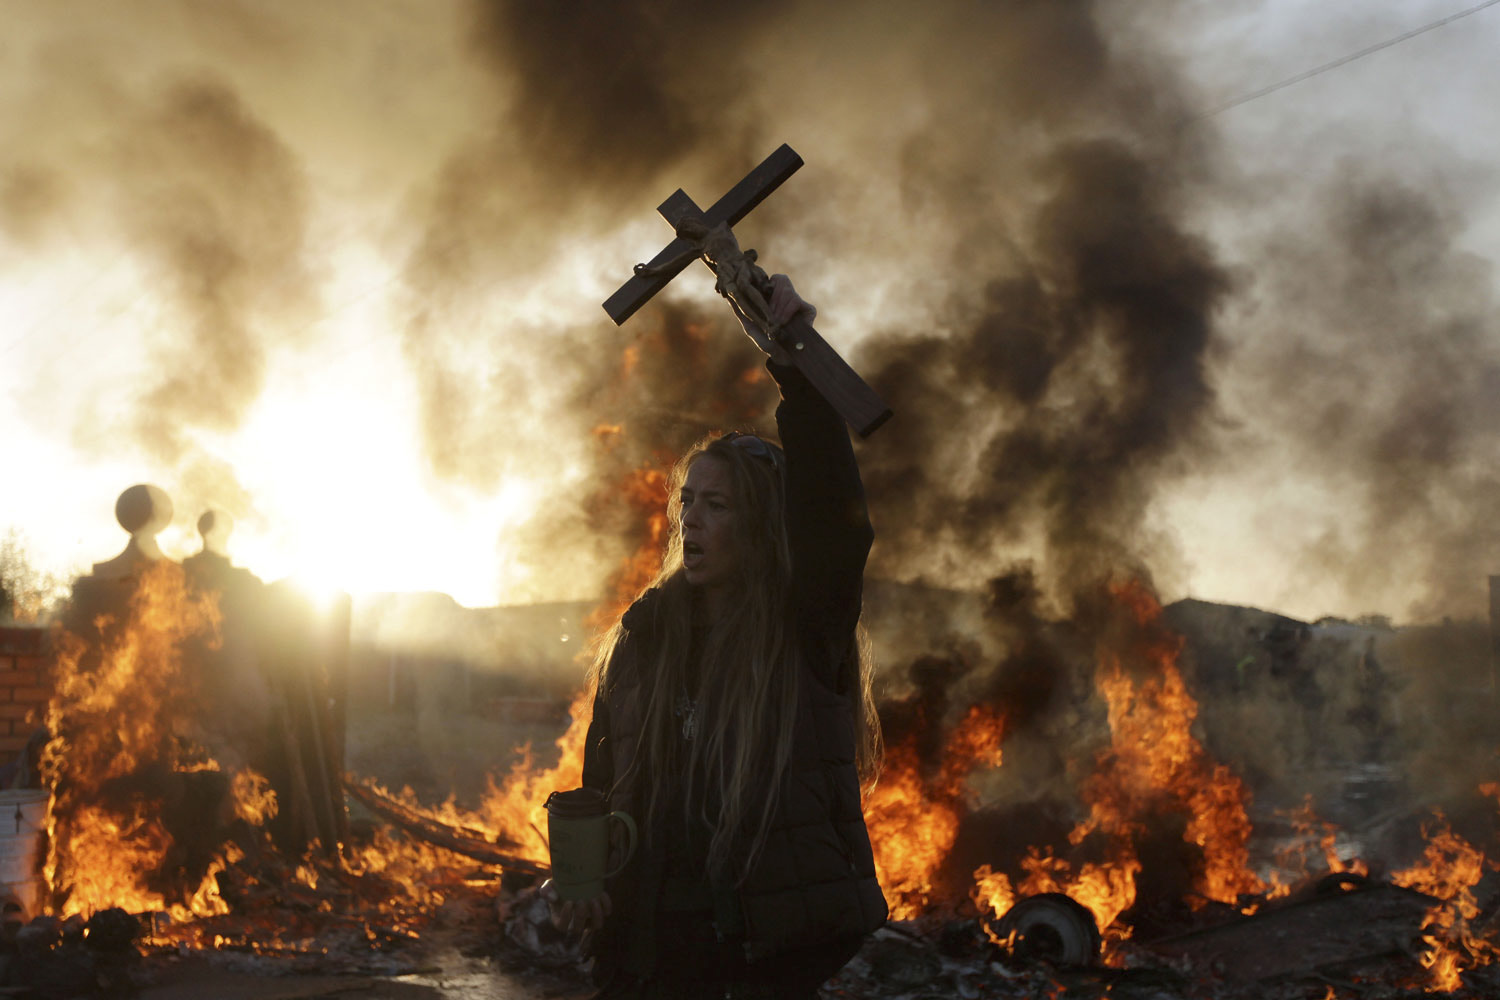 October 19, 2011. An Irish traveler resident holds up a cross for the media, in front of a burning barricade during evictions at the Dale Farm travelers site, near Basildon England, 30 miles east of London.